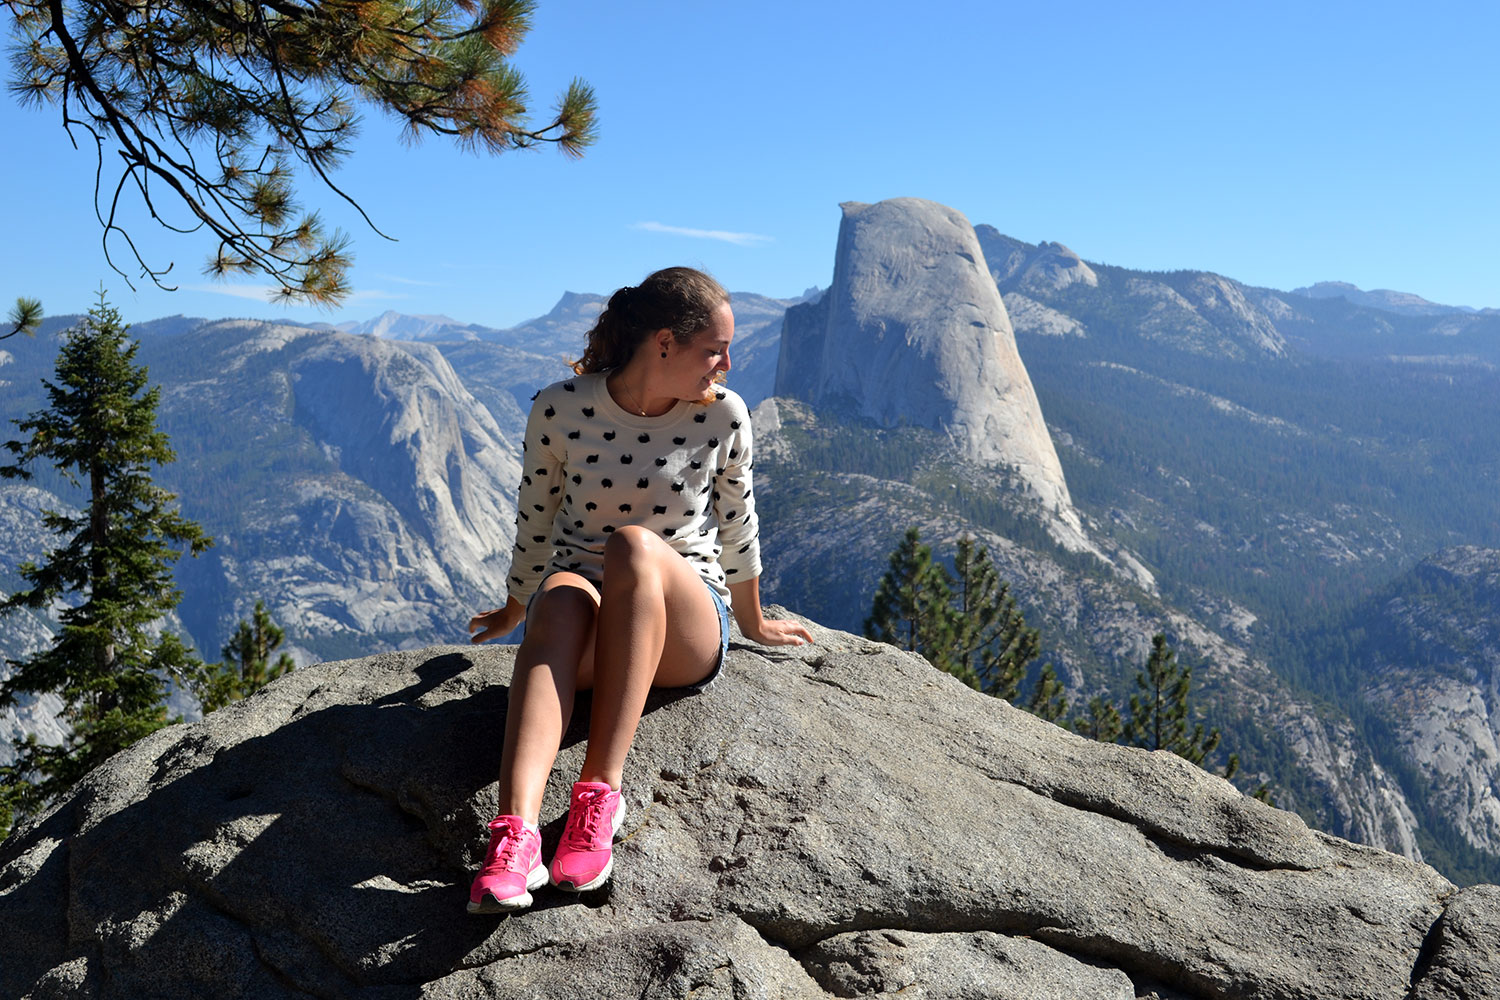 10 Things I Learned from Travelling in 10 Years - Yosemite 2